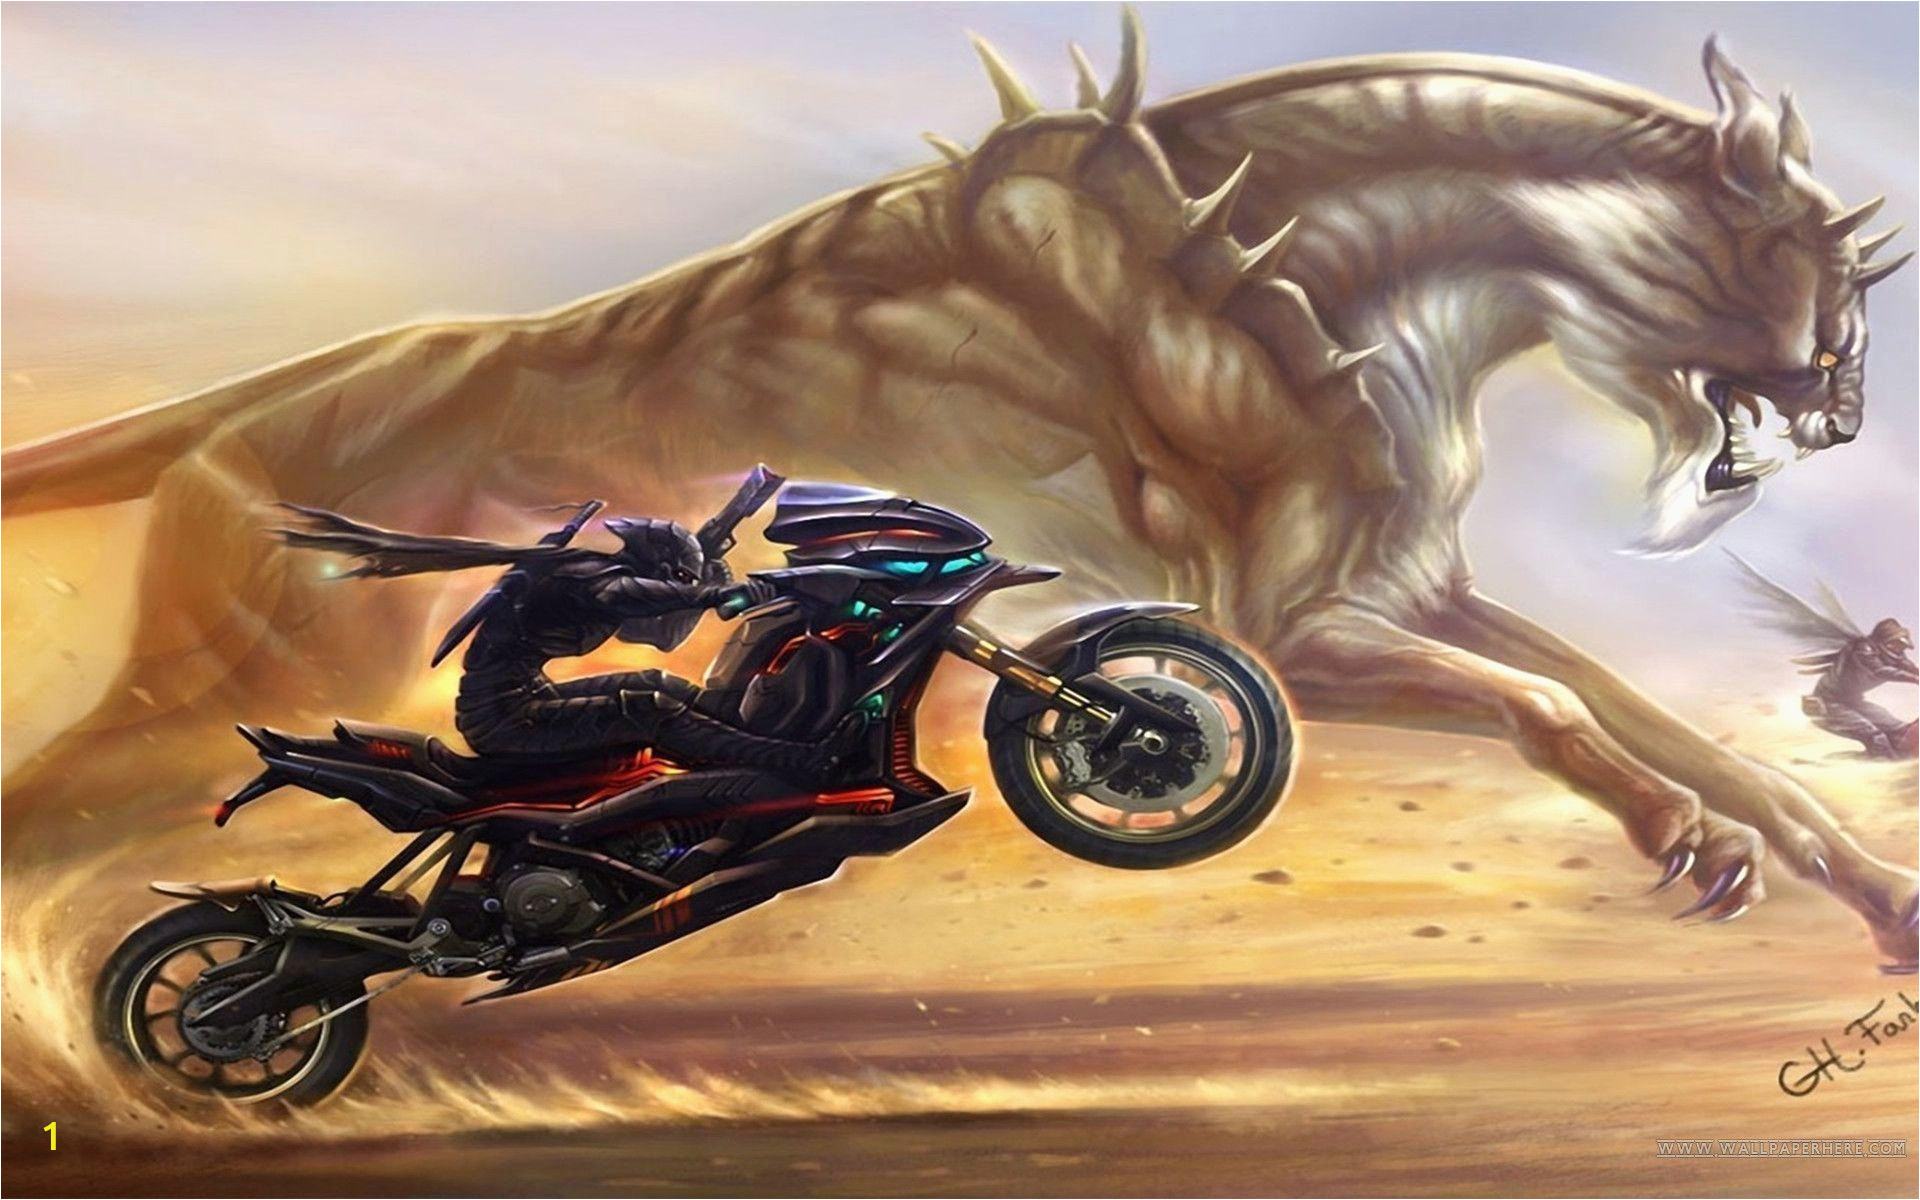 bikers wallpaper awesome cool motorcycle wallpapers wallpaper cave 2019 of bikers wallpaper